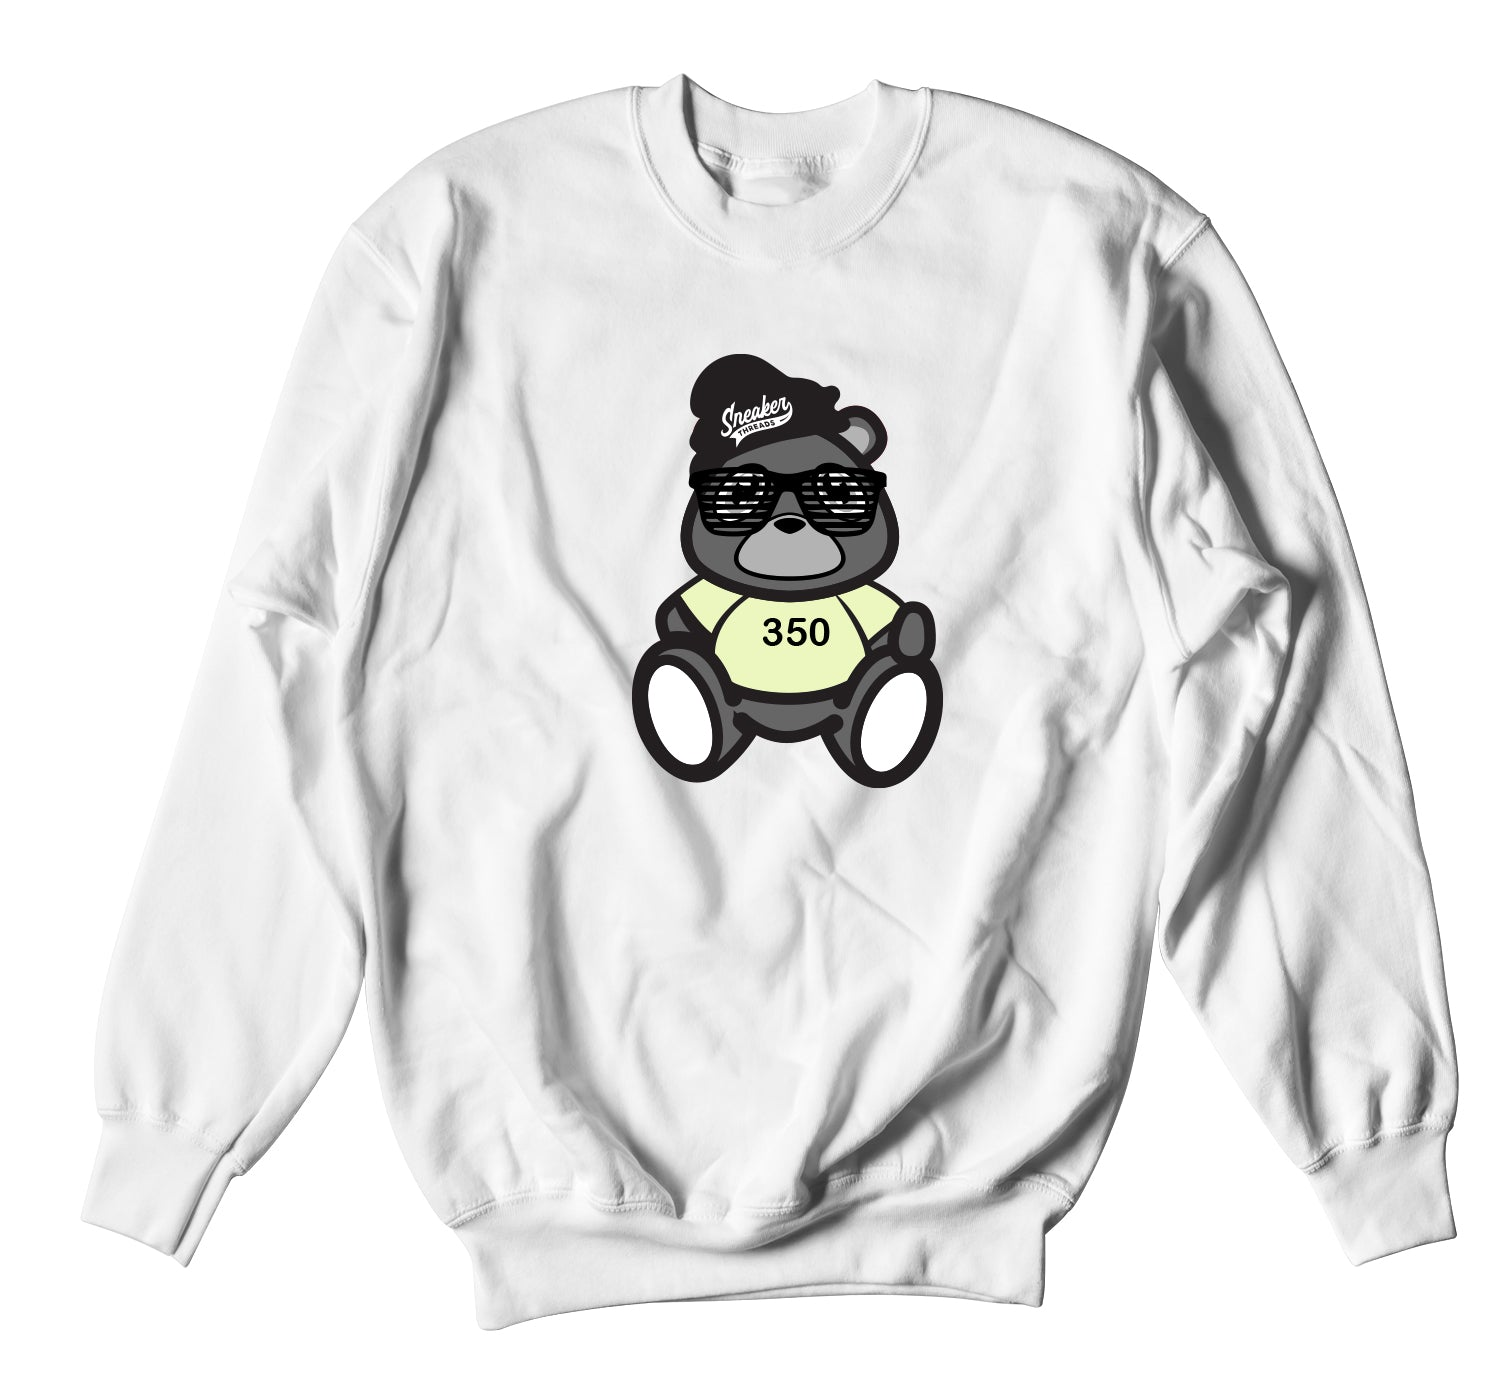 Yeezy Yeshaya Play Bear Sweater